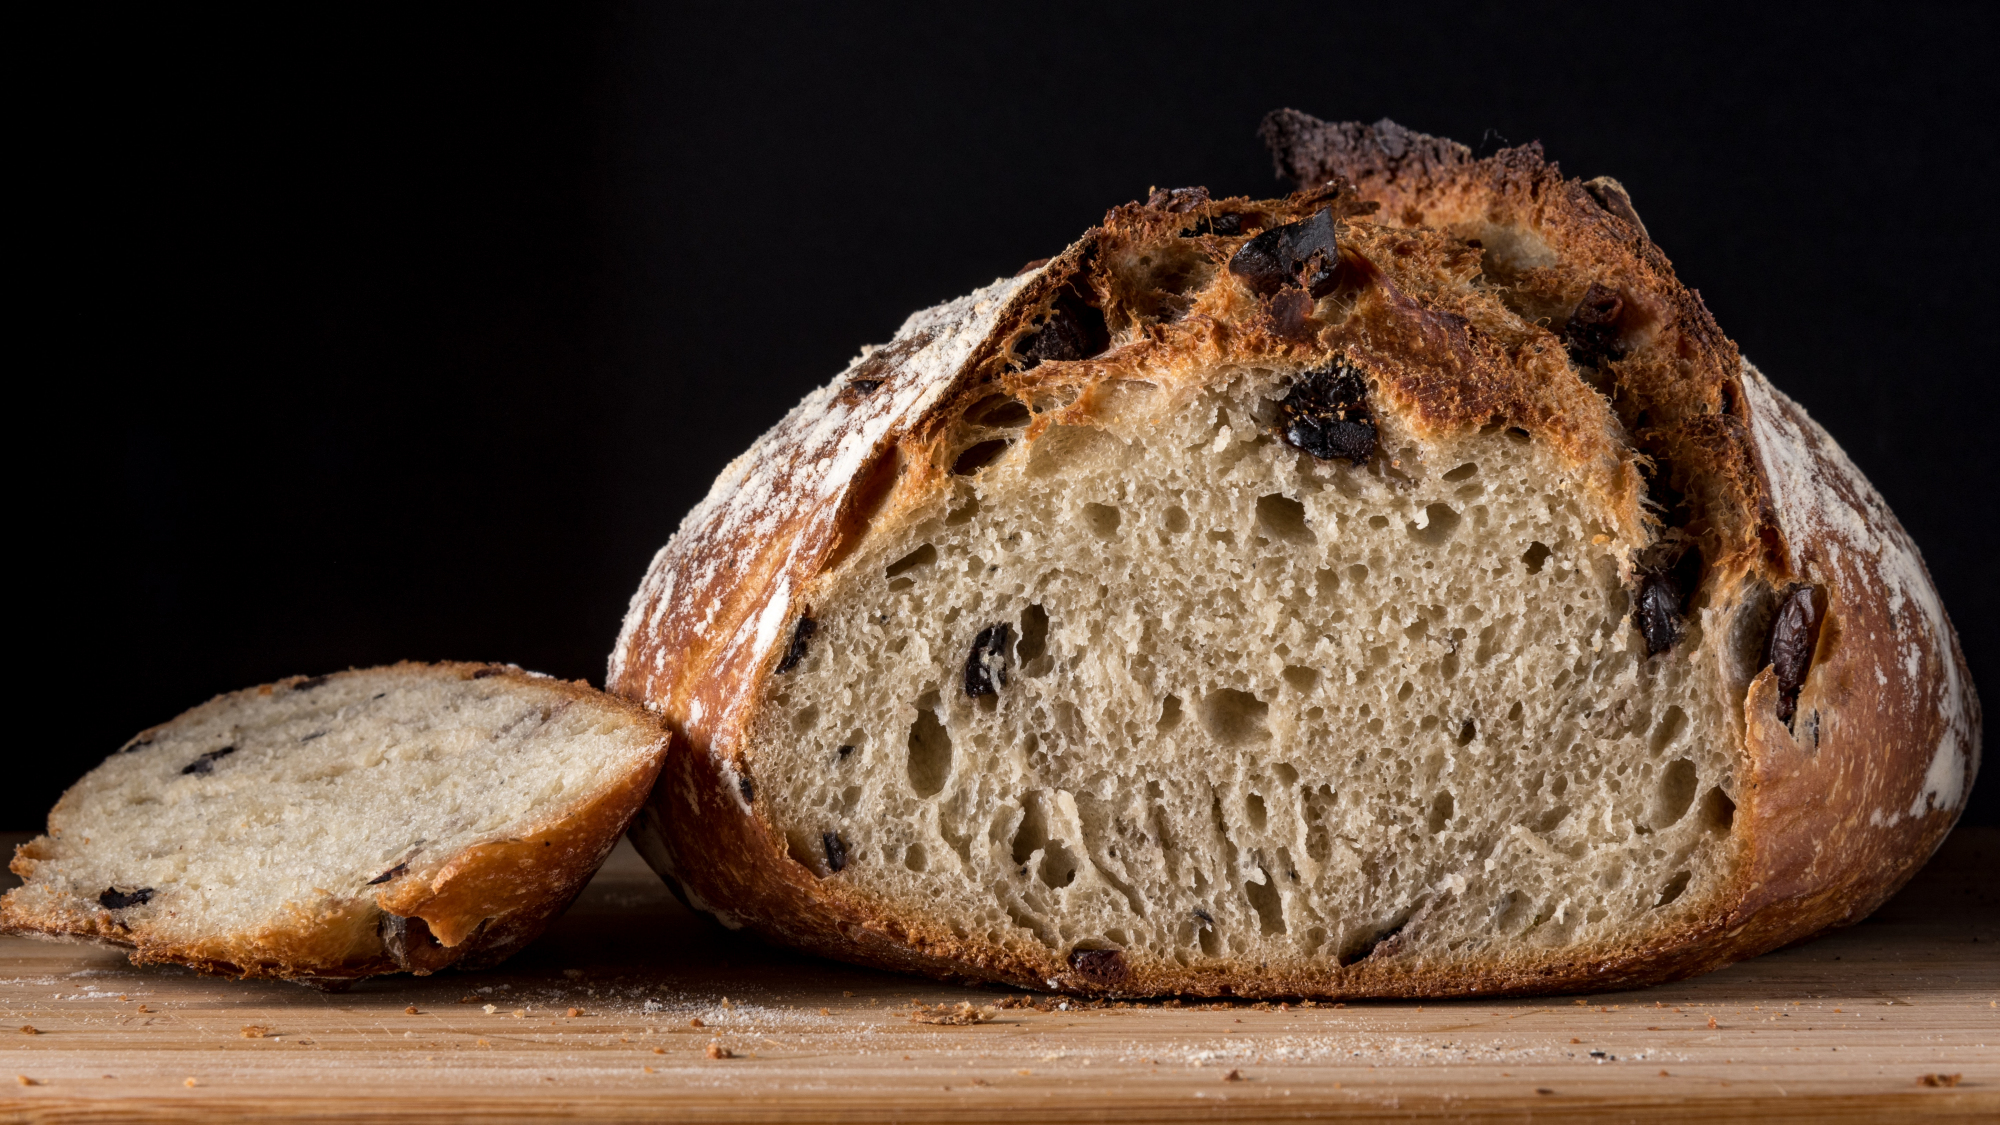 Enhancing taste and flavor: this is the ancient craft of the baker